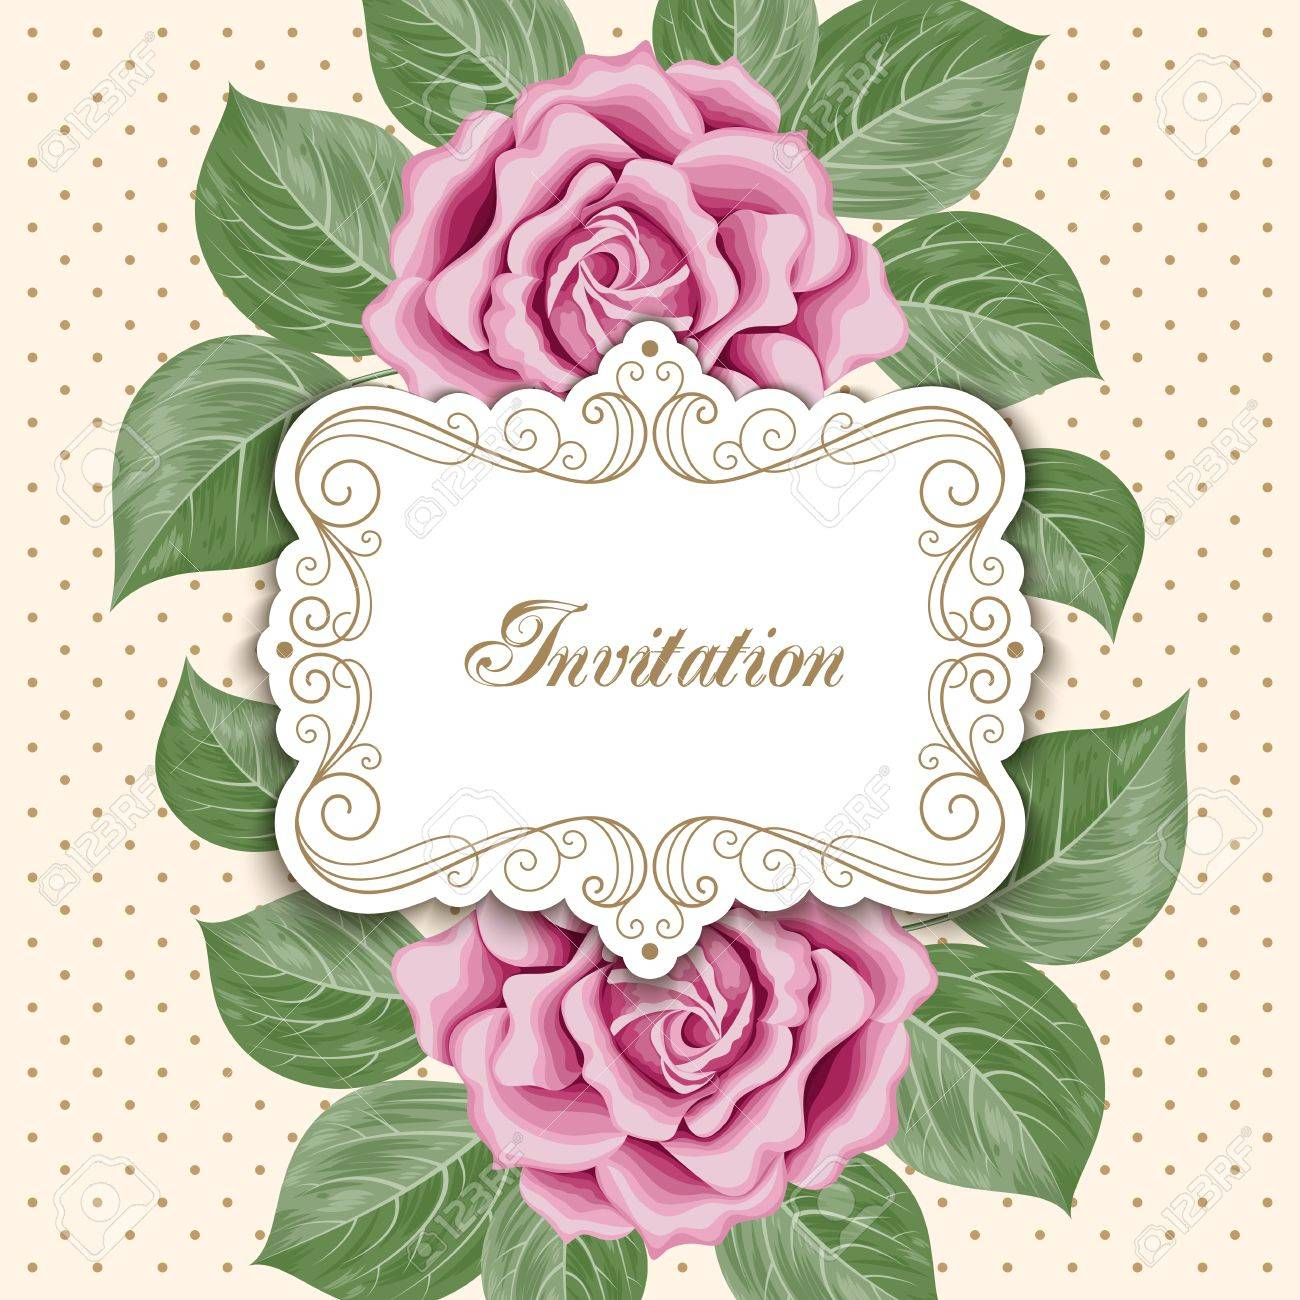 Vintage Floral Invitation Template With Hand Drawn Flowers Royalty inside proportions 1300 X 1300